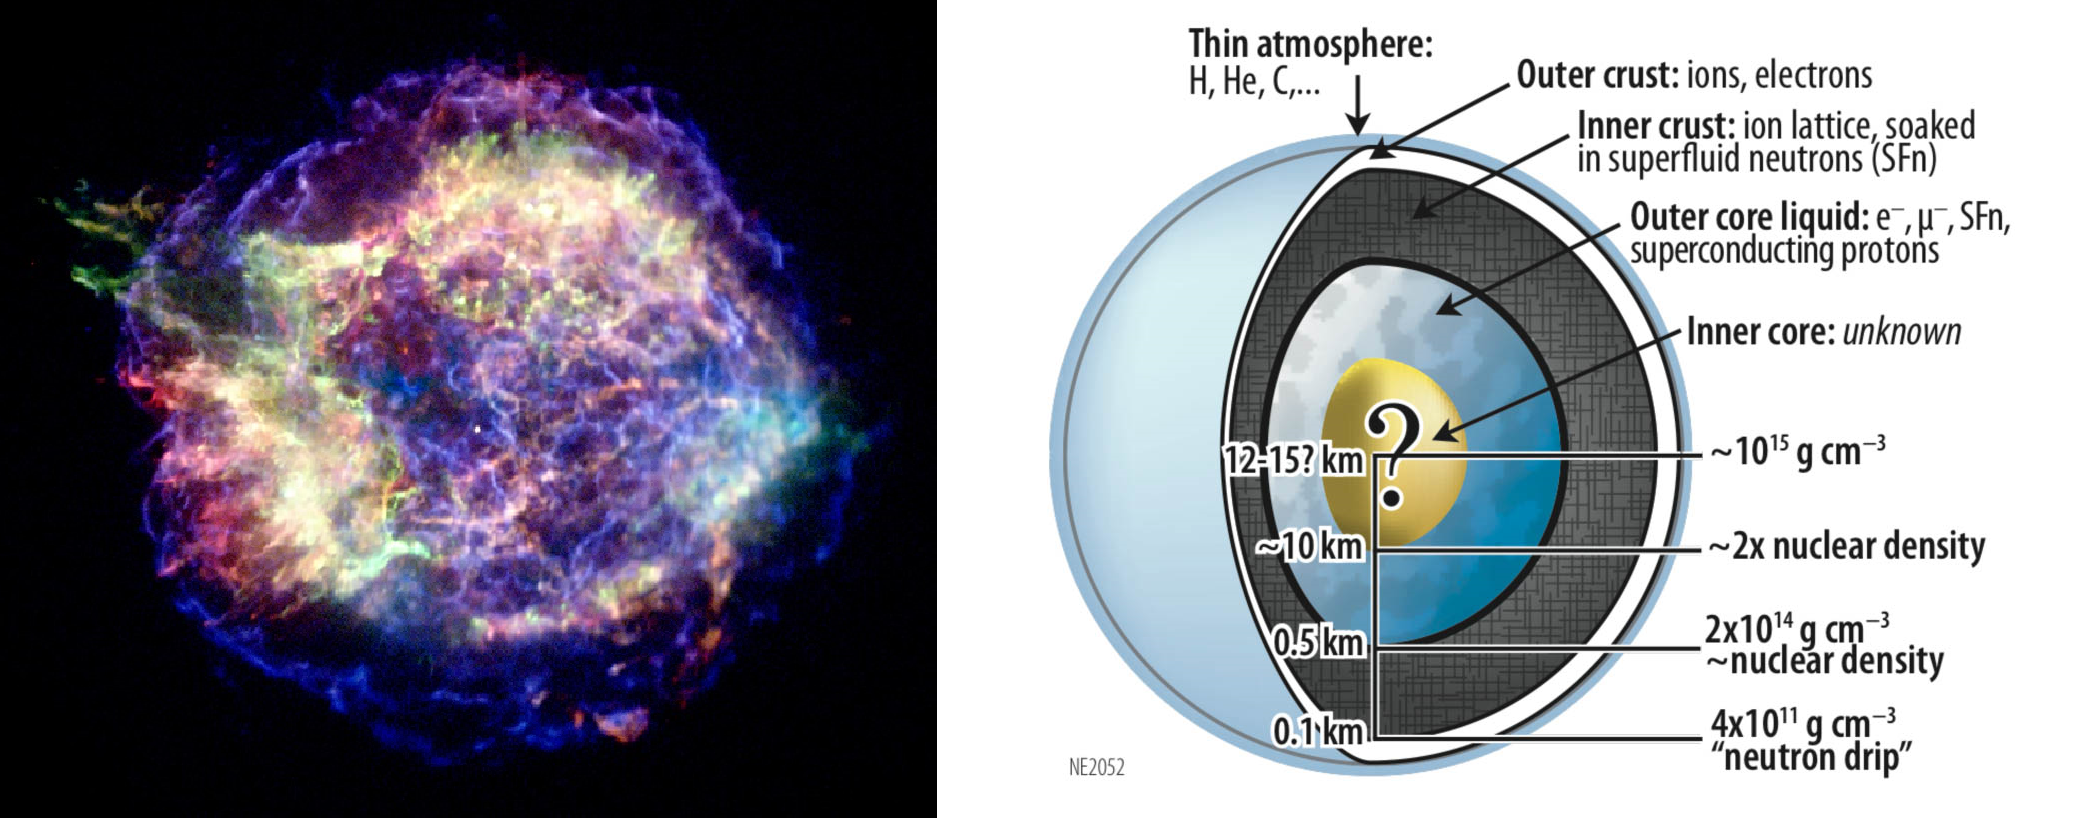 Left: X-ray observations of Cassiopeia A from the NASA Chandra satellite (the central white spot is a neutron star). Right: internal constitution of a neutron star, taken from http://heasarc.gsfc.nasa.gov/docs/nicer/nicer_about.html